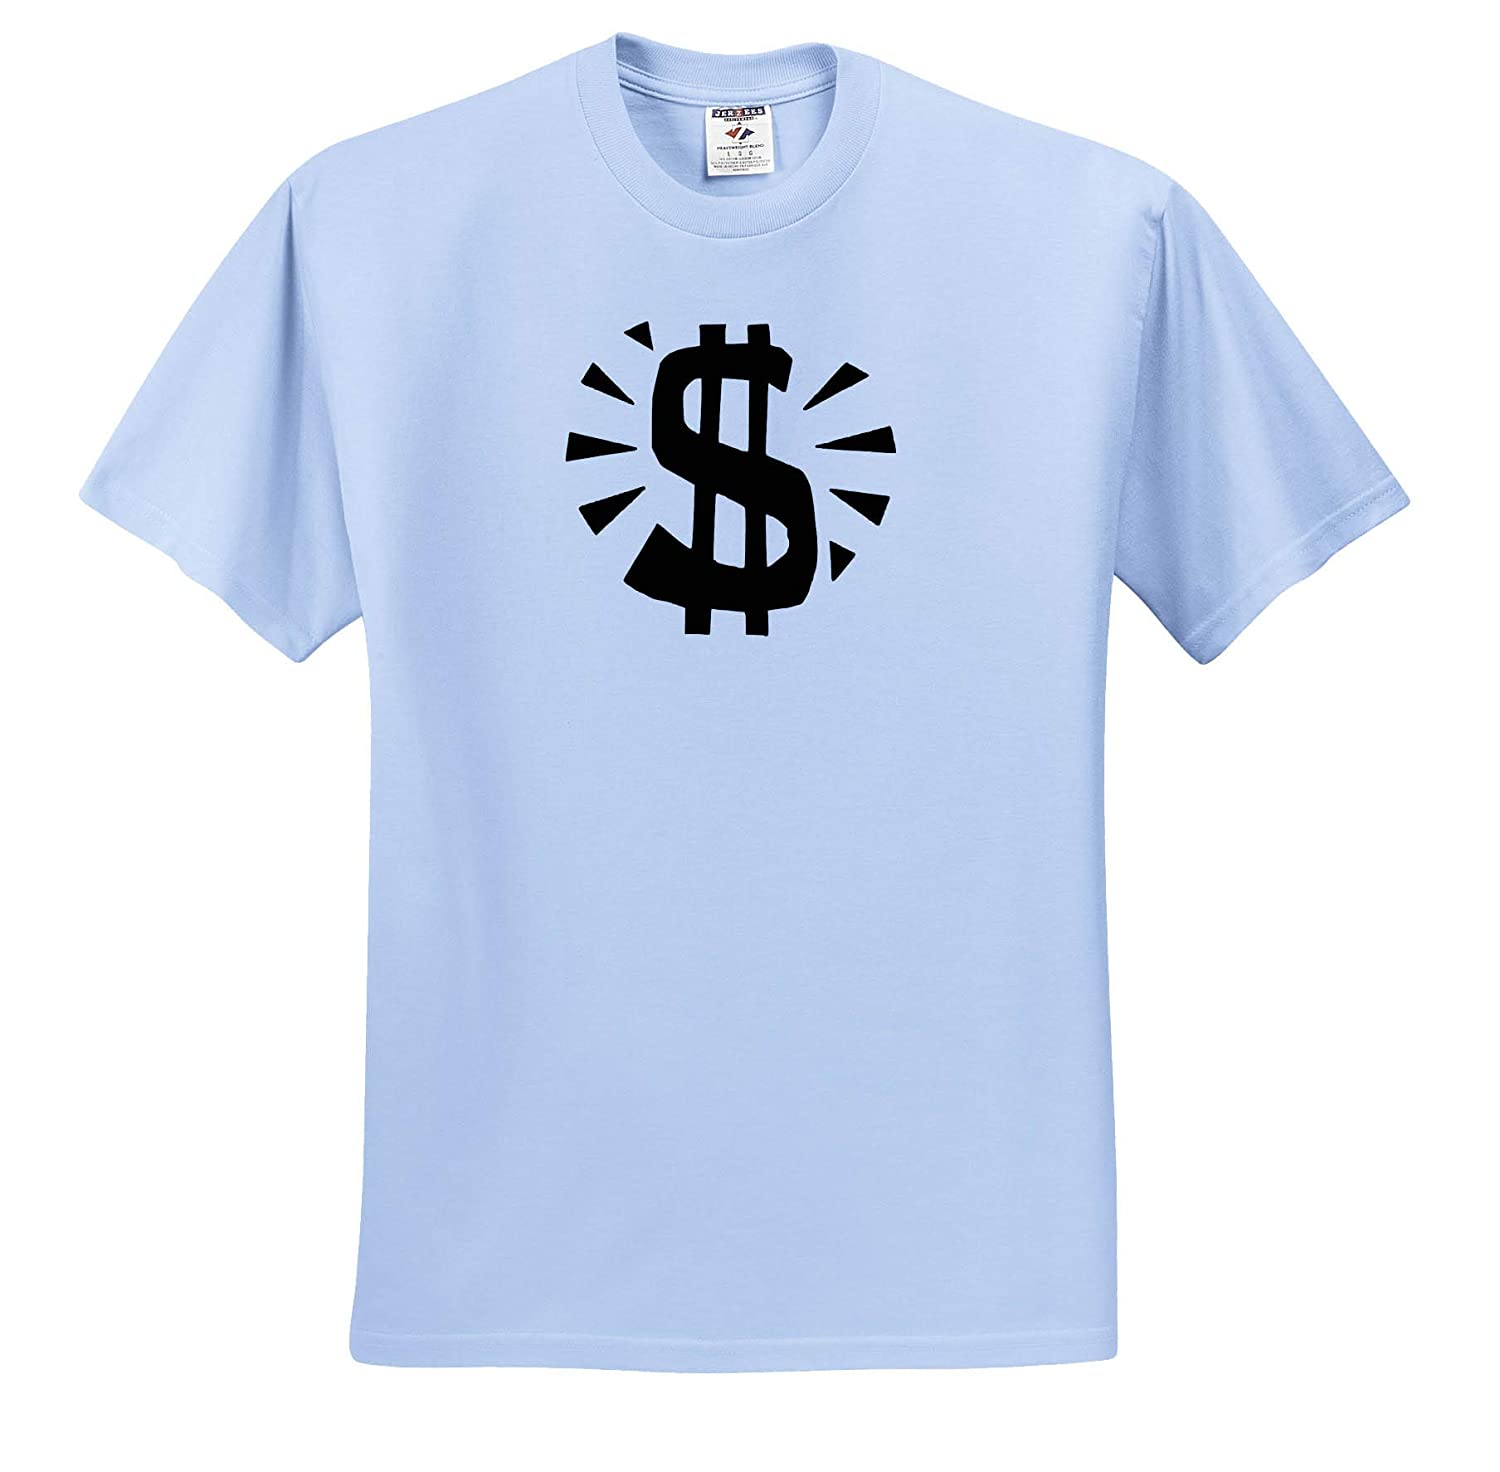 Black and White 3dRose Lens Art by Florene Adult T-Shirt XL Image of Huge Dollar Sign in Black ts/_317076